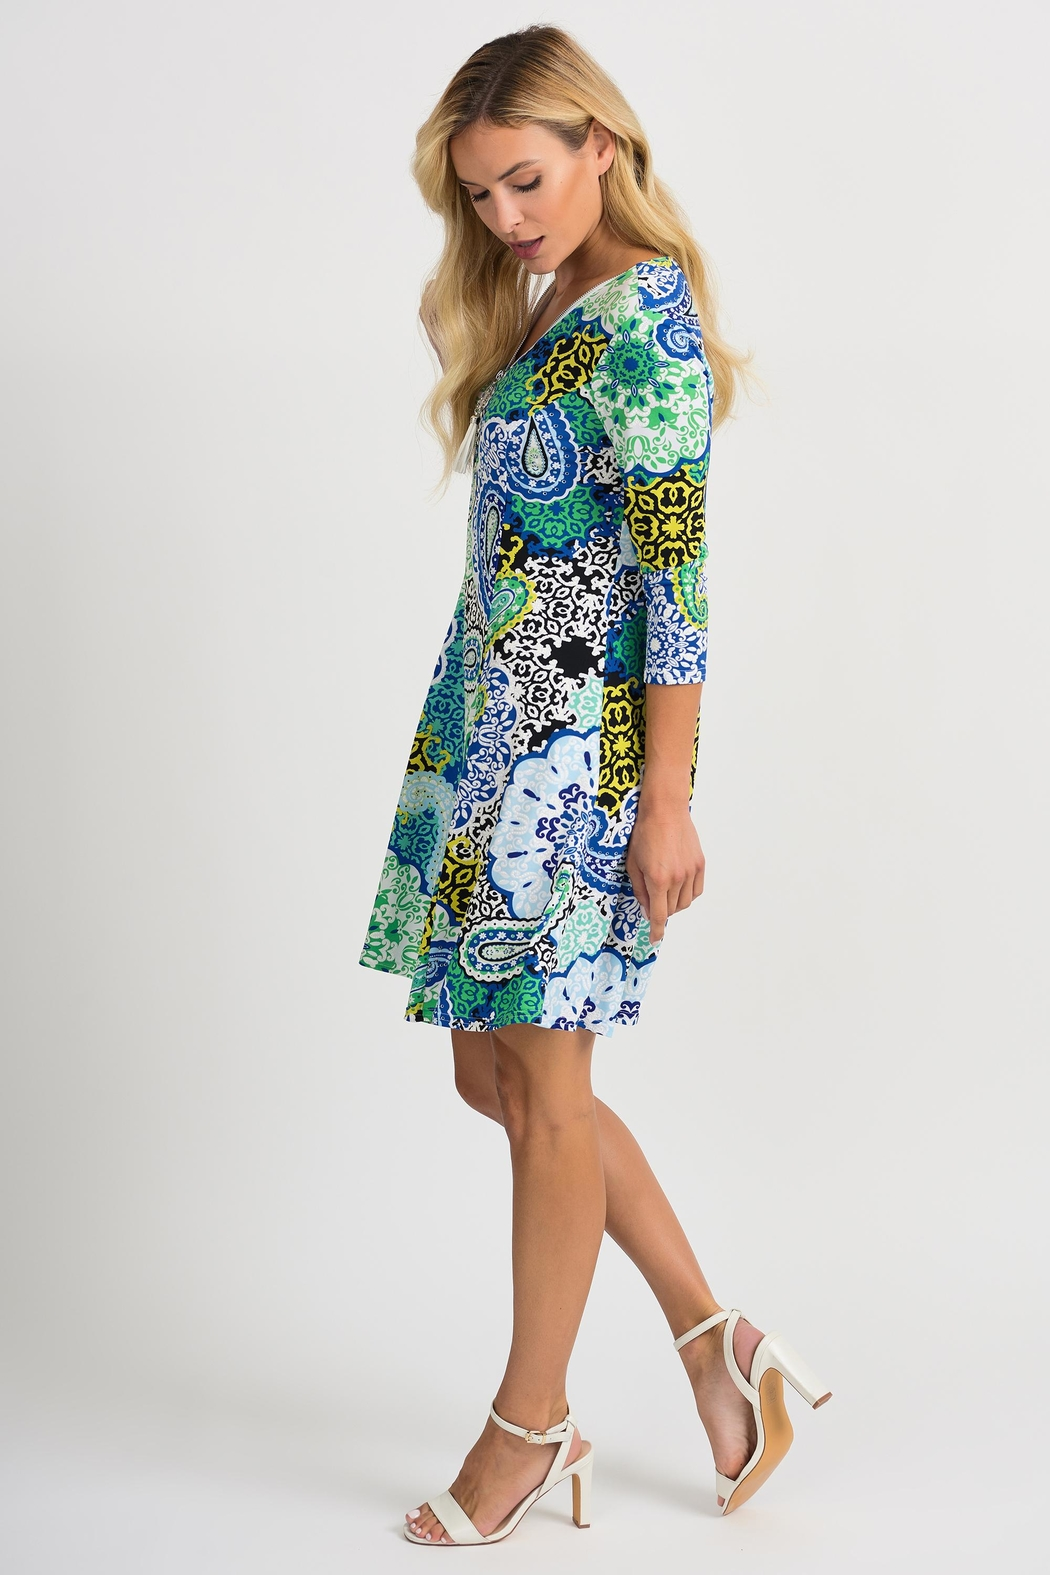 Joseph Ribkoff Crystal Printed Dress - Front Full Image